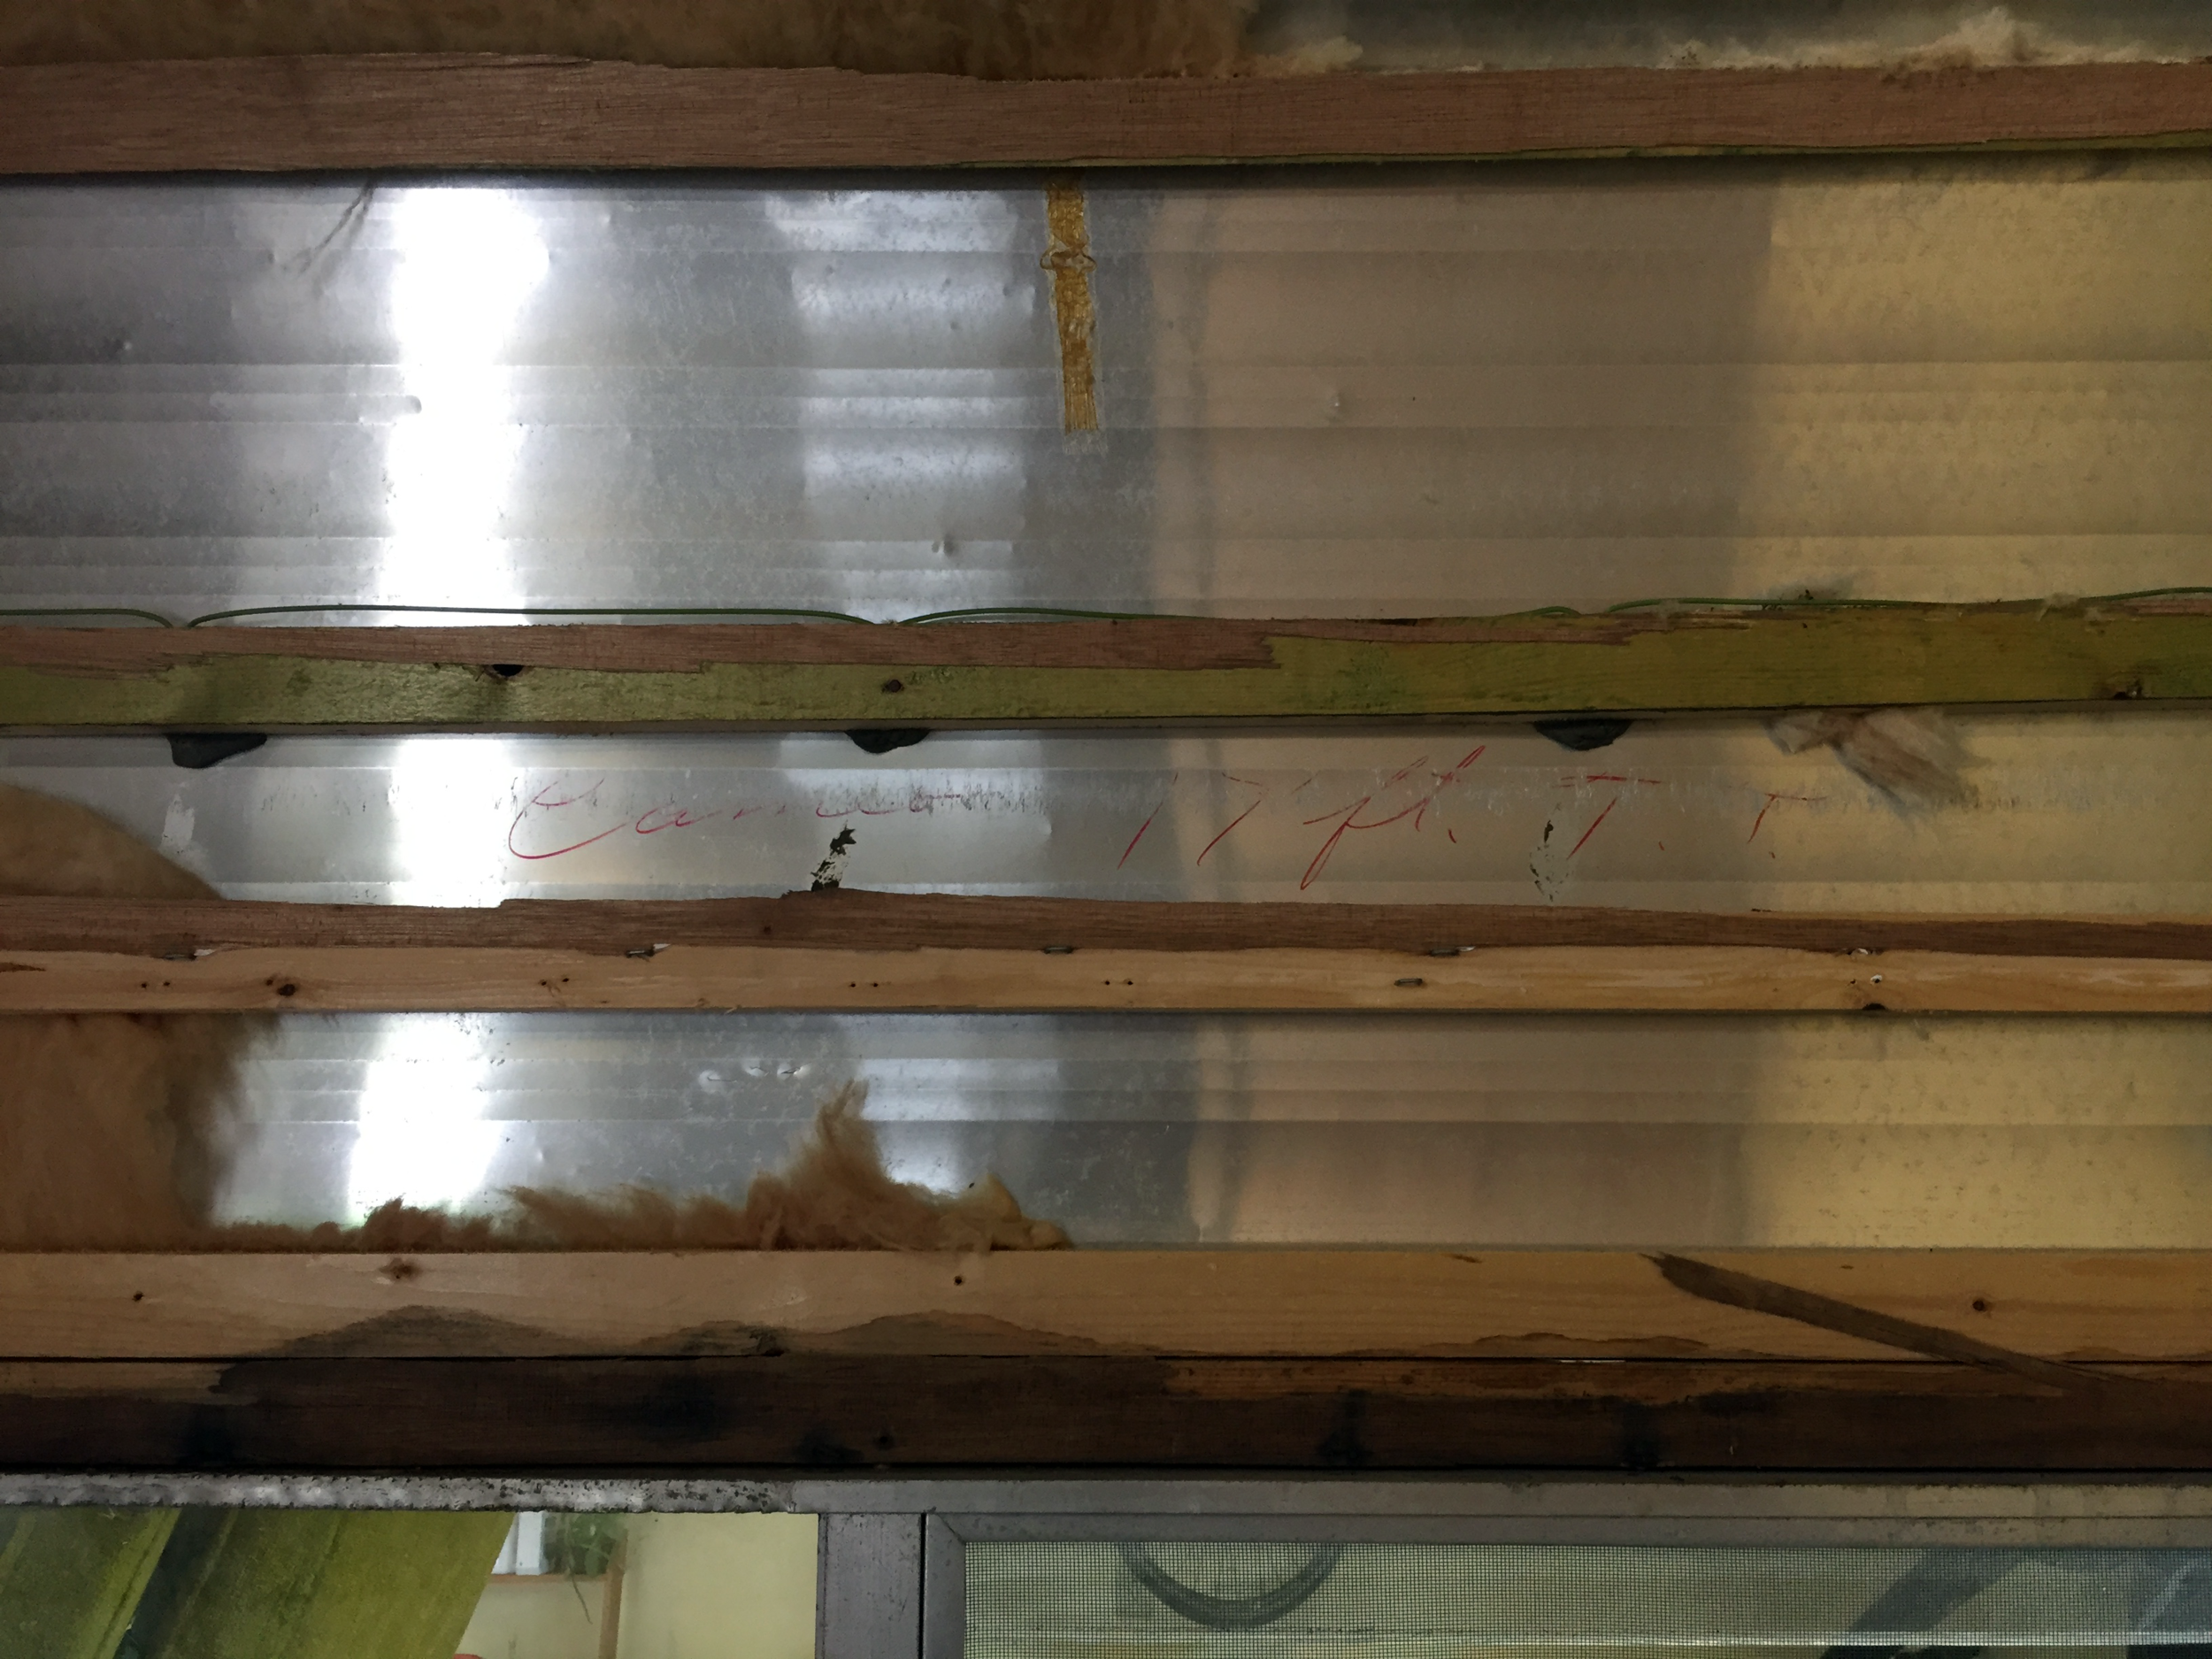 """Original handwriting found above the rear window under the insulation reads  """"Cameo 17 ft. T.T."""",  which I think stands for """"travel trailer""""."""